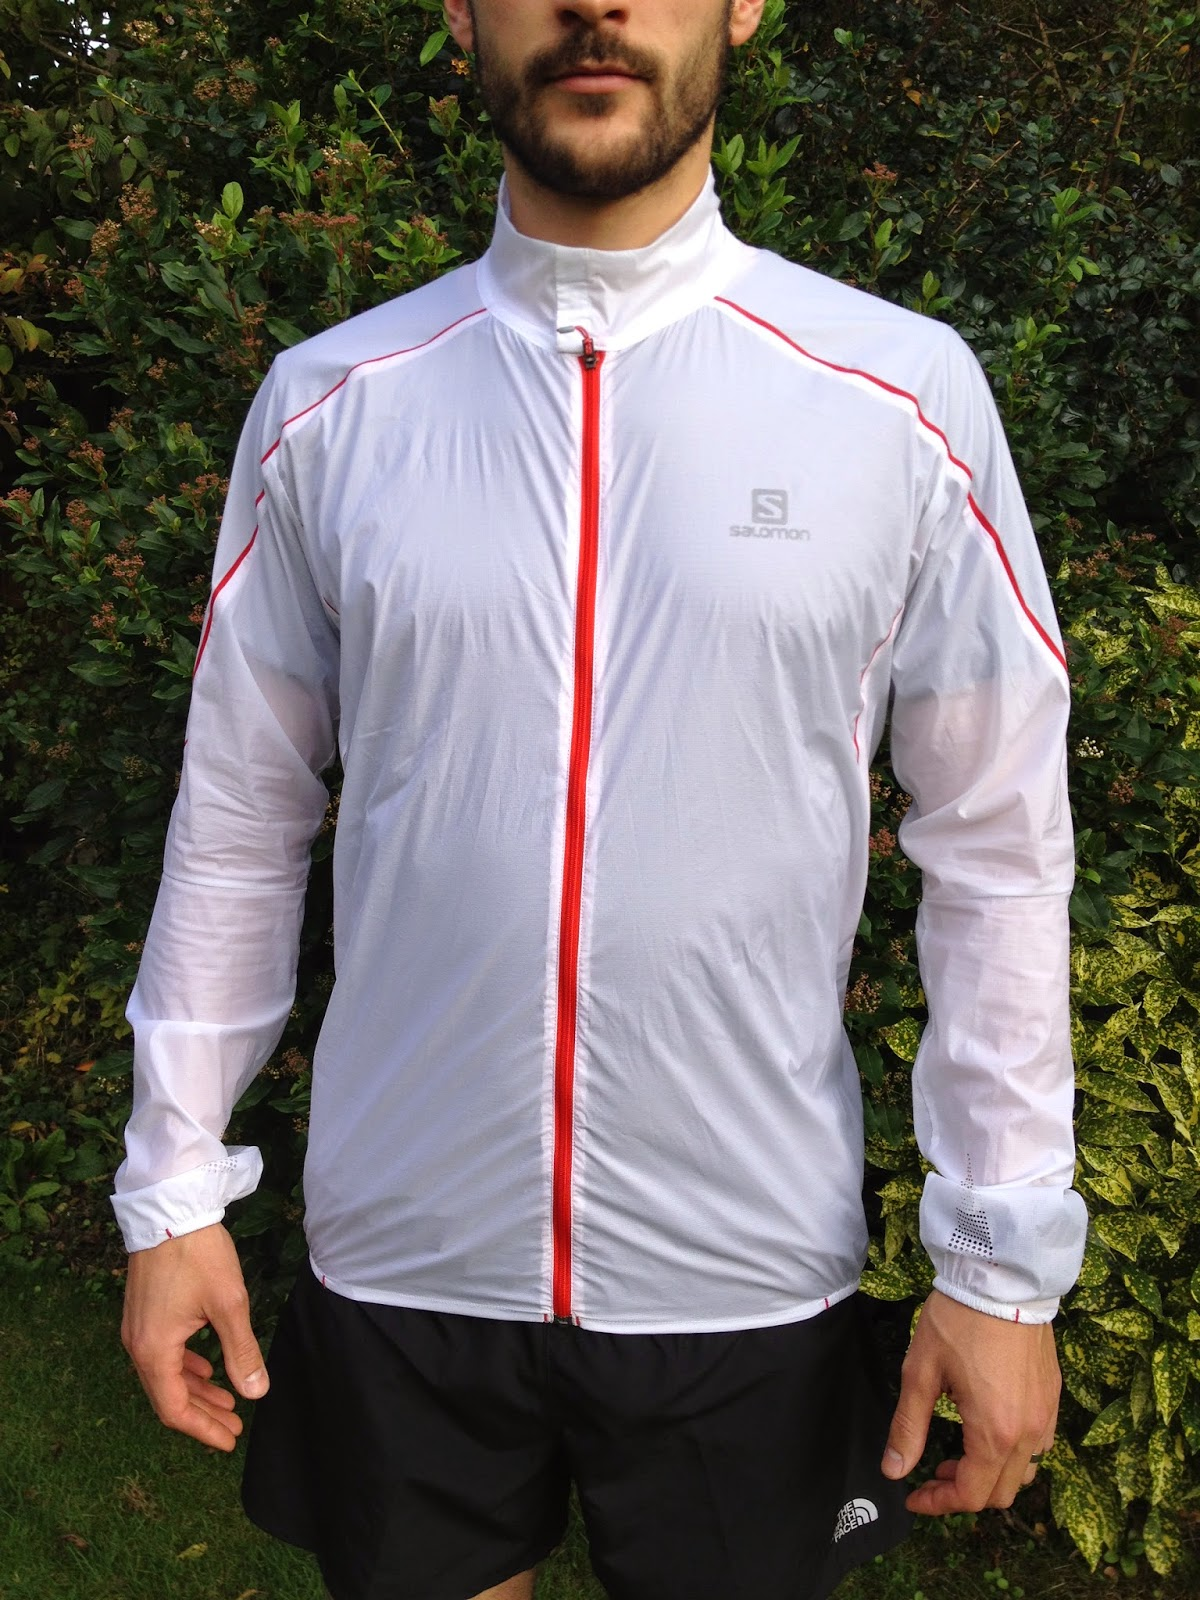 856abea76 The windproof yet breathable fabric completely blocks chilly blasts of wind  whilst allowing your skin to breath and not get too sweaty in comparison  with ...